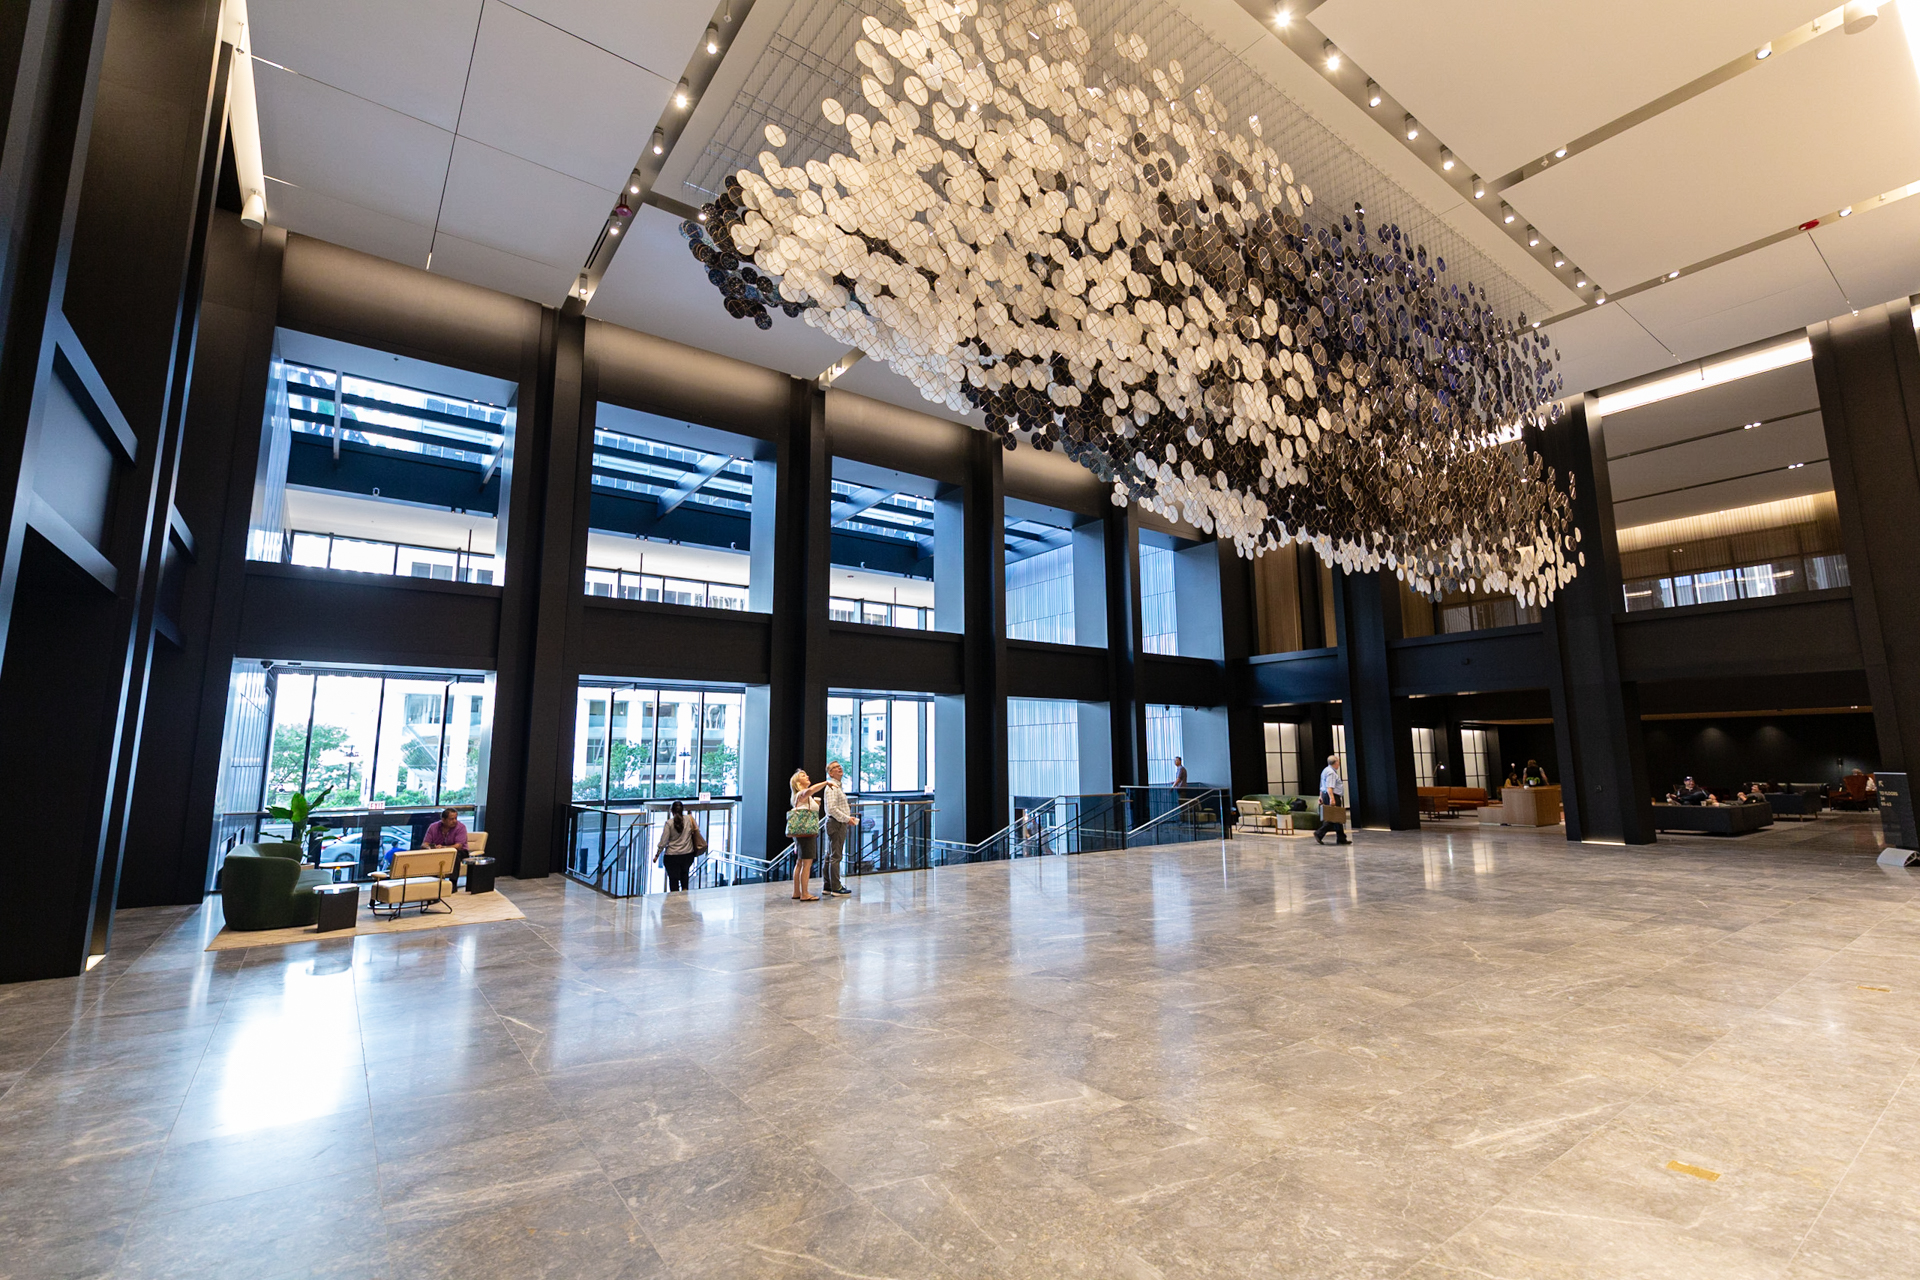 The Transformation Continues with New Wacker Drive Lobby and Art Installation Unveiling